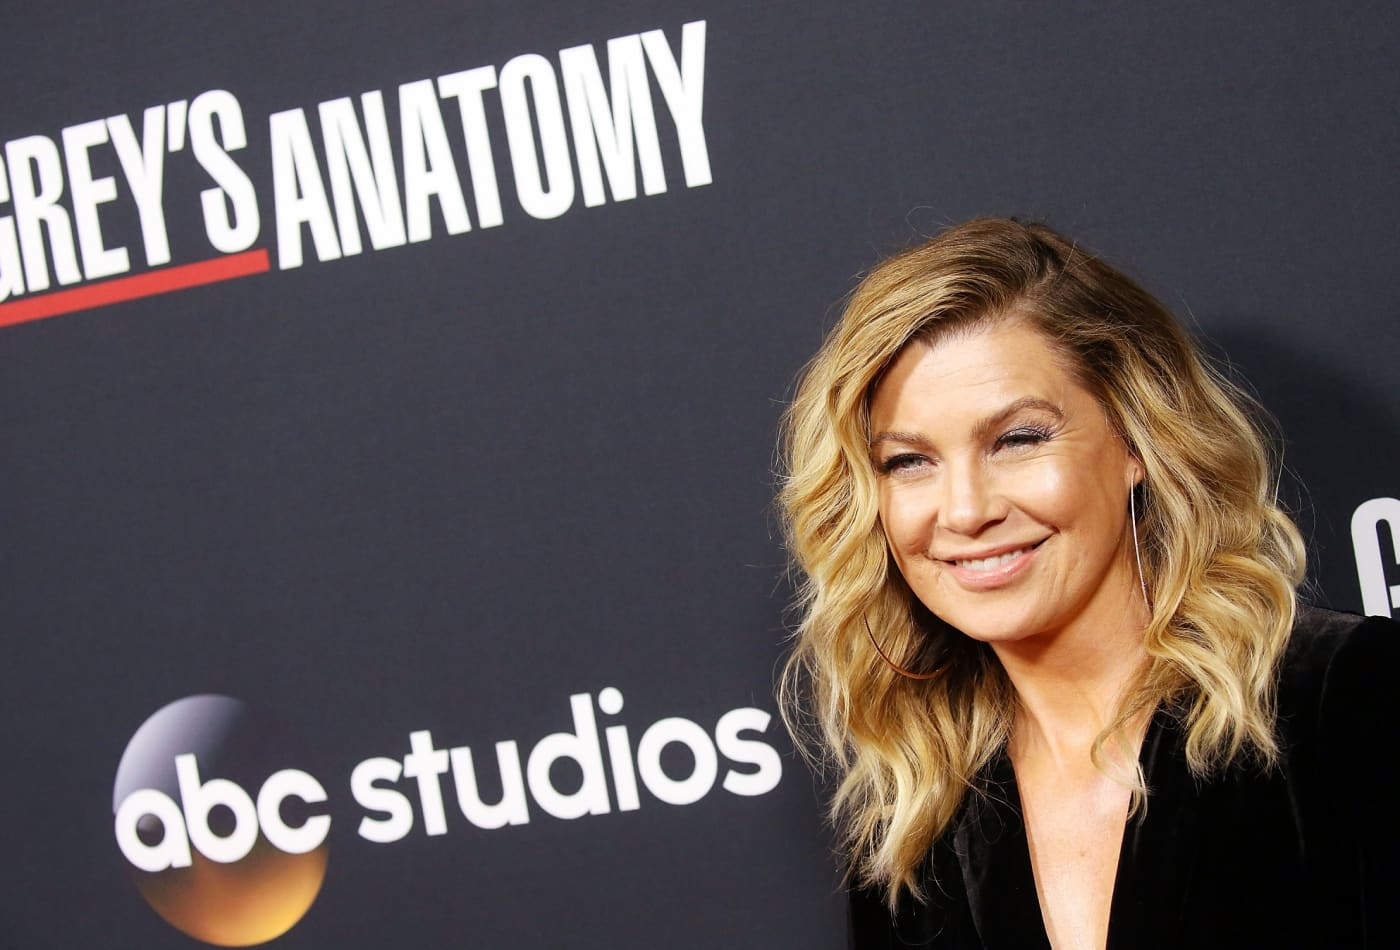 Greys Anatomy Star Ellen Pompeo Earns Over 20 Million A Year